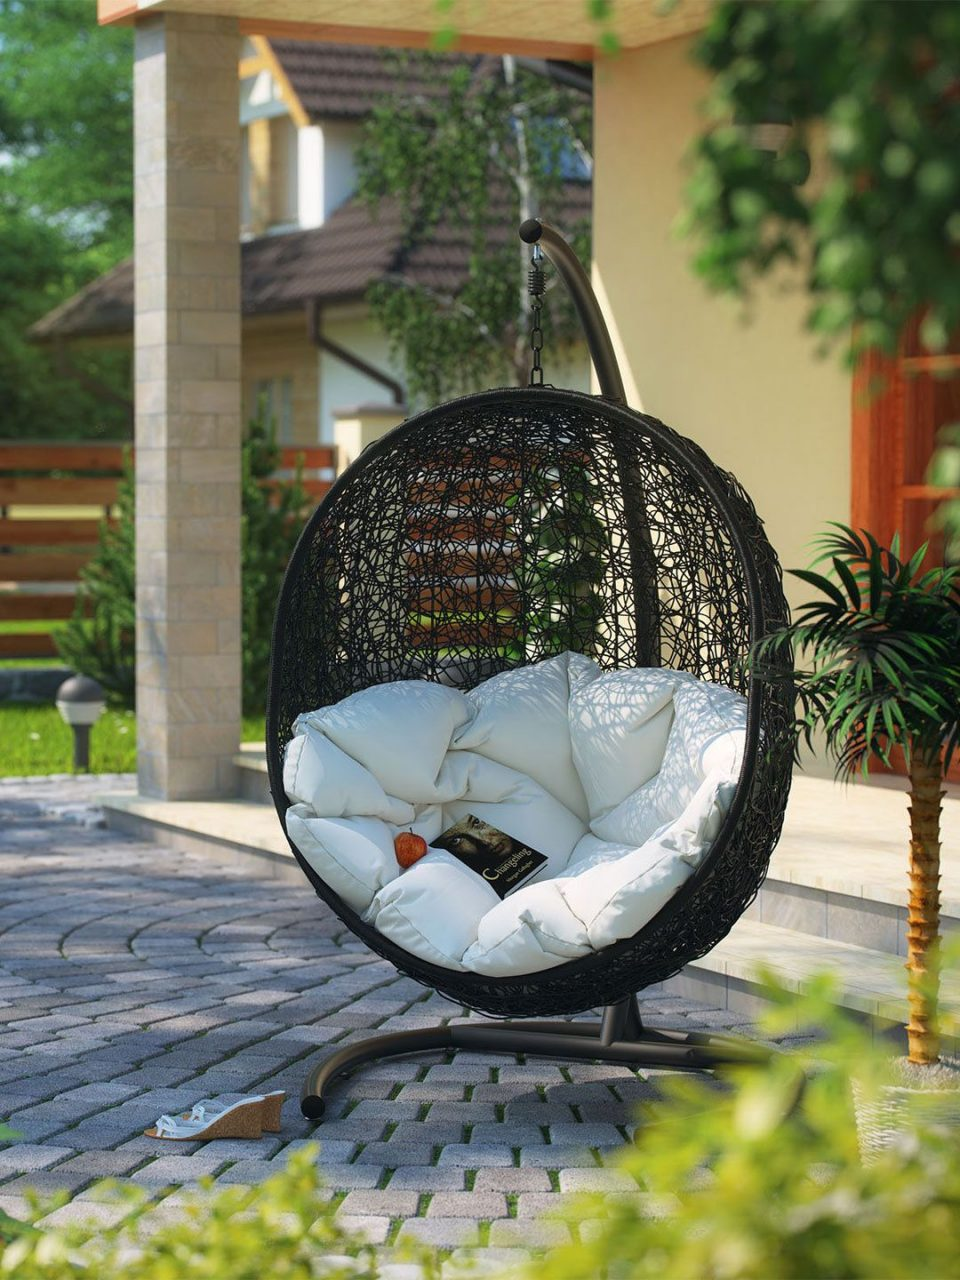 Modway Outdoor Cocoon Patio Swing Chair Swingchair Swing Chair